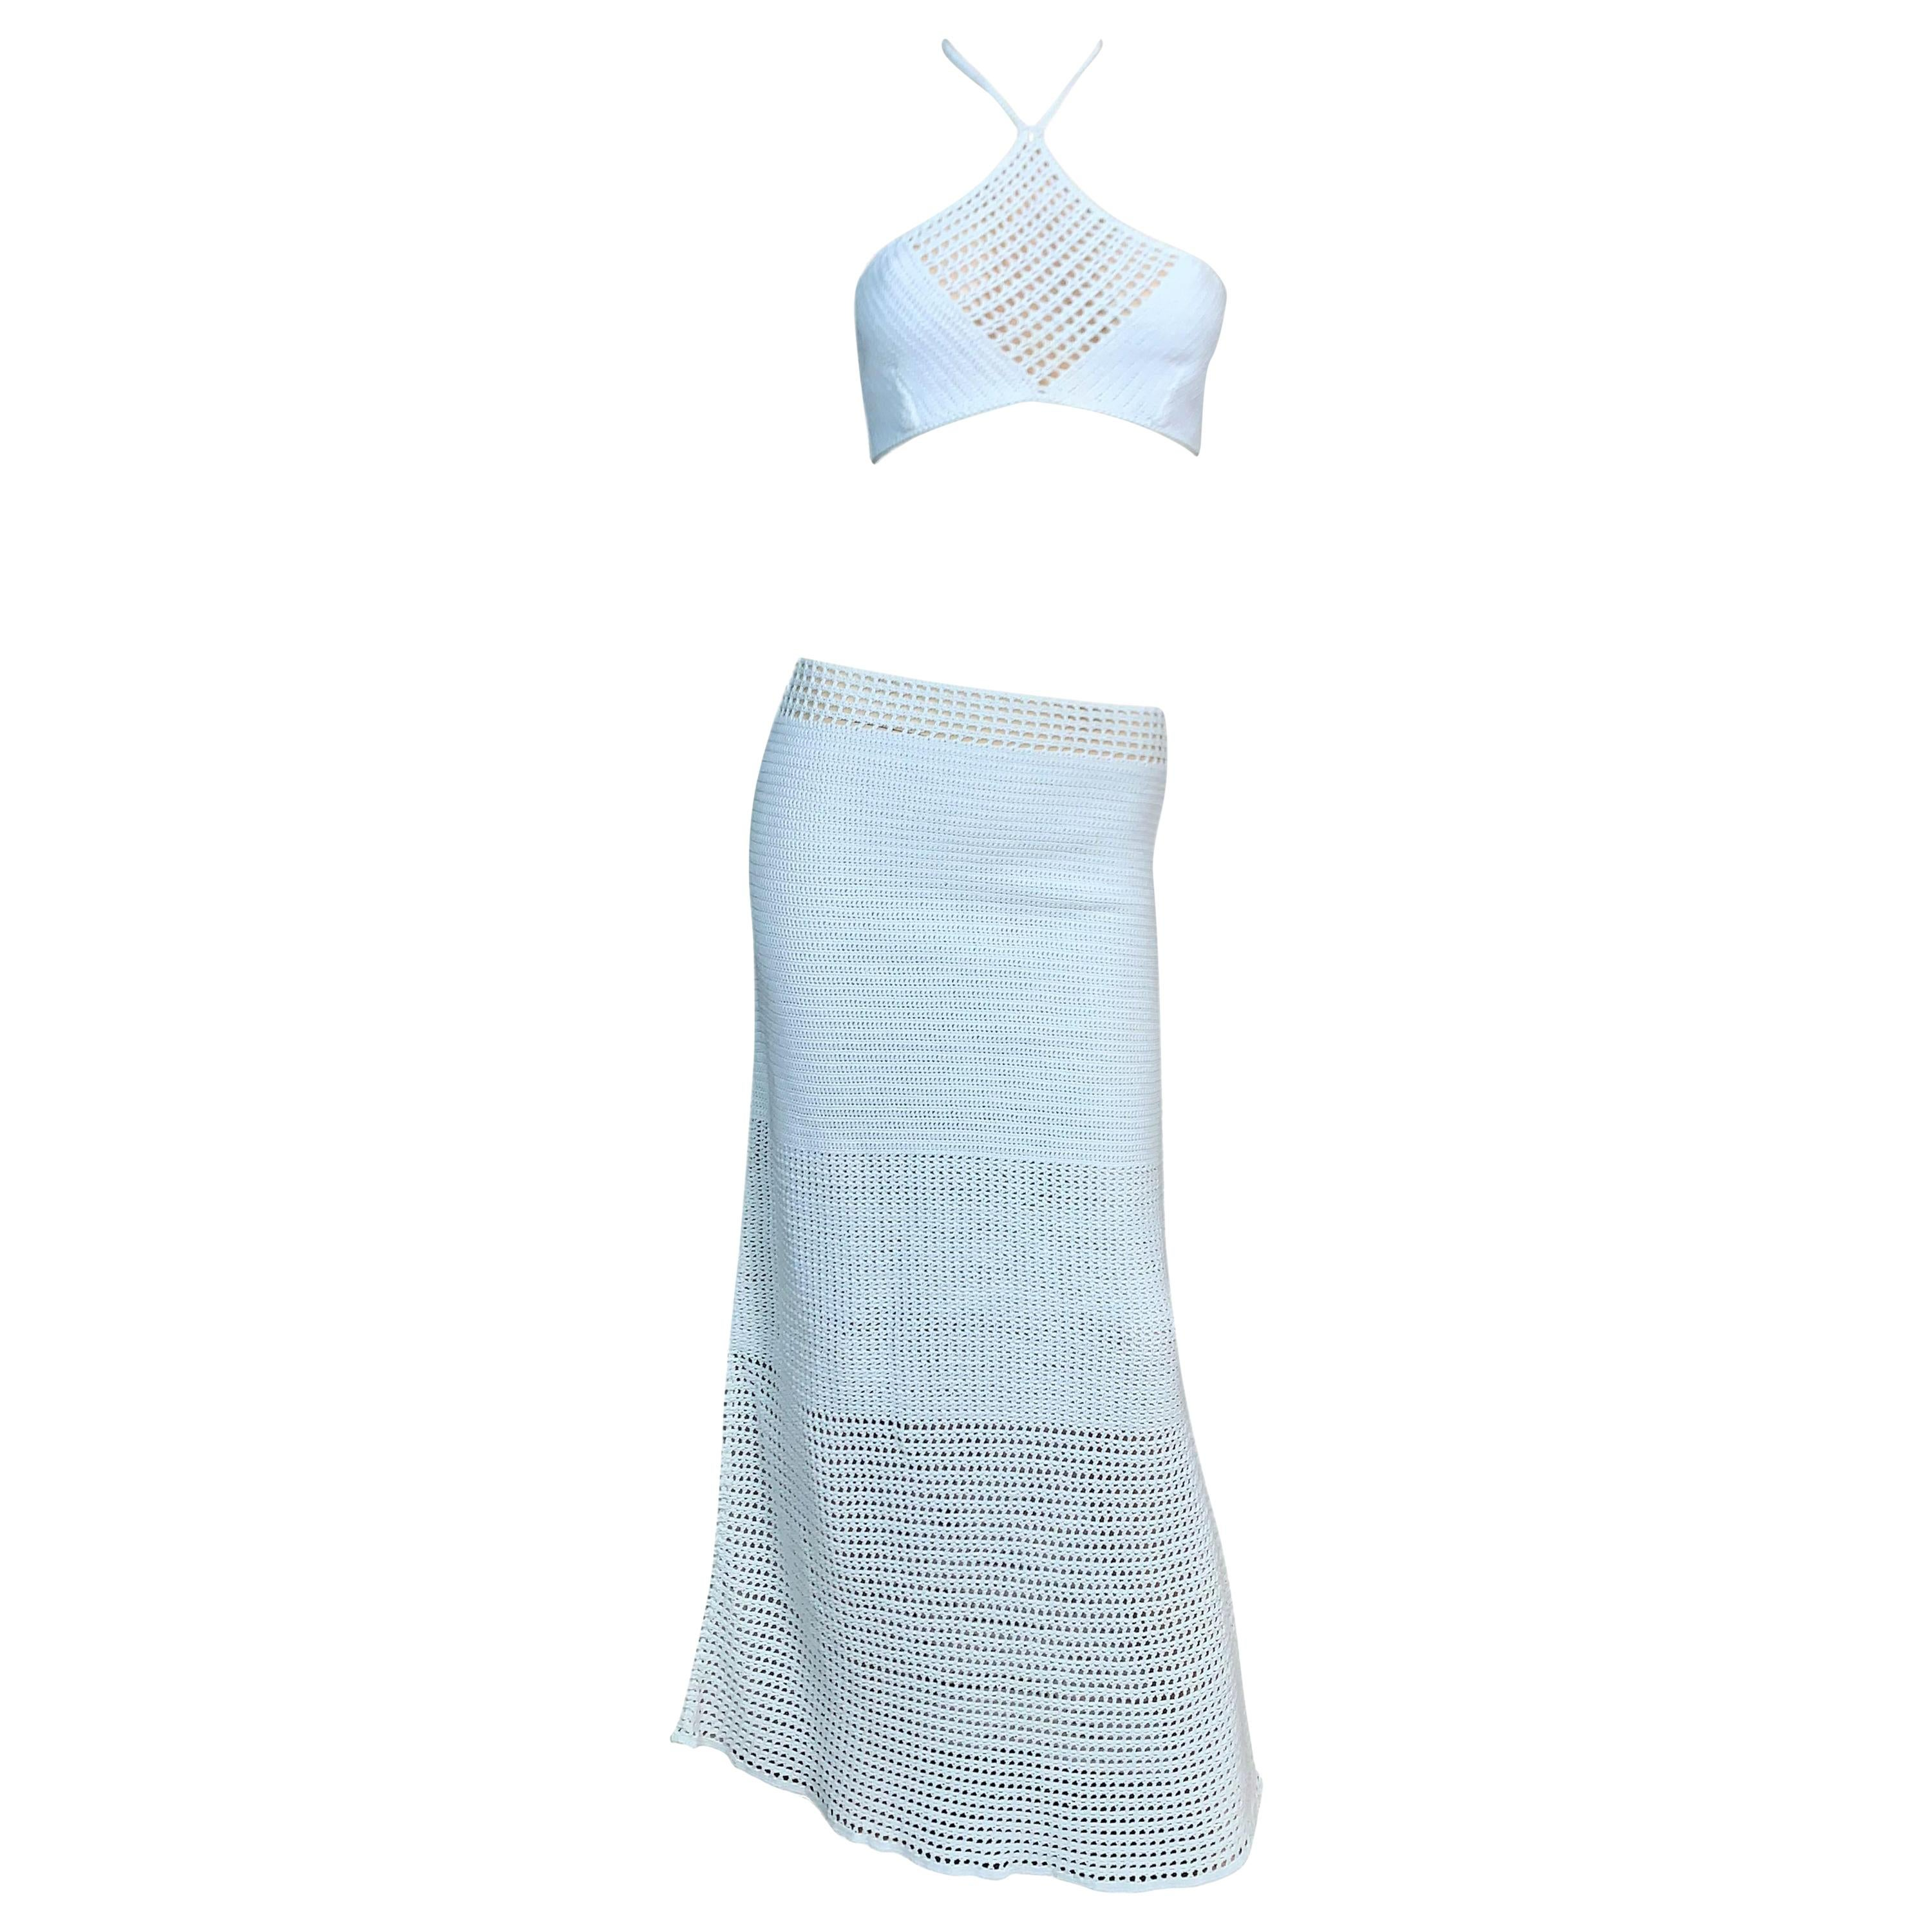 S/S 1996 Gucci Tom Ford Runway Sheer White Knit Crop Top & Maxi Skirt Set